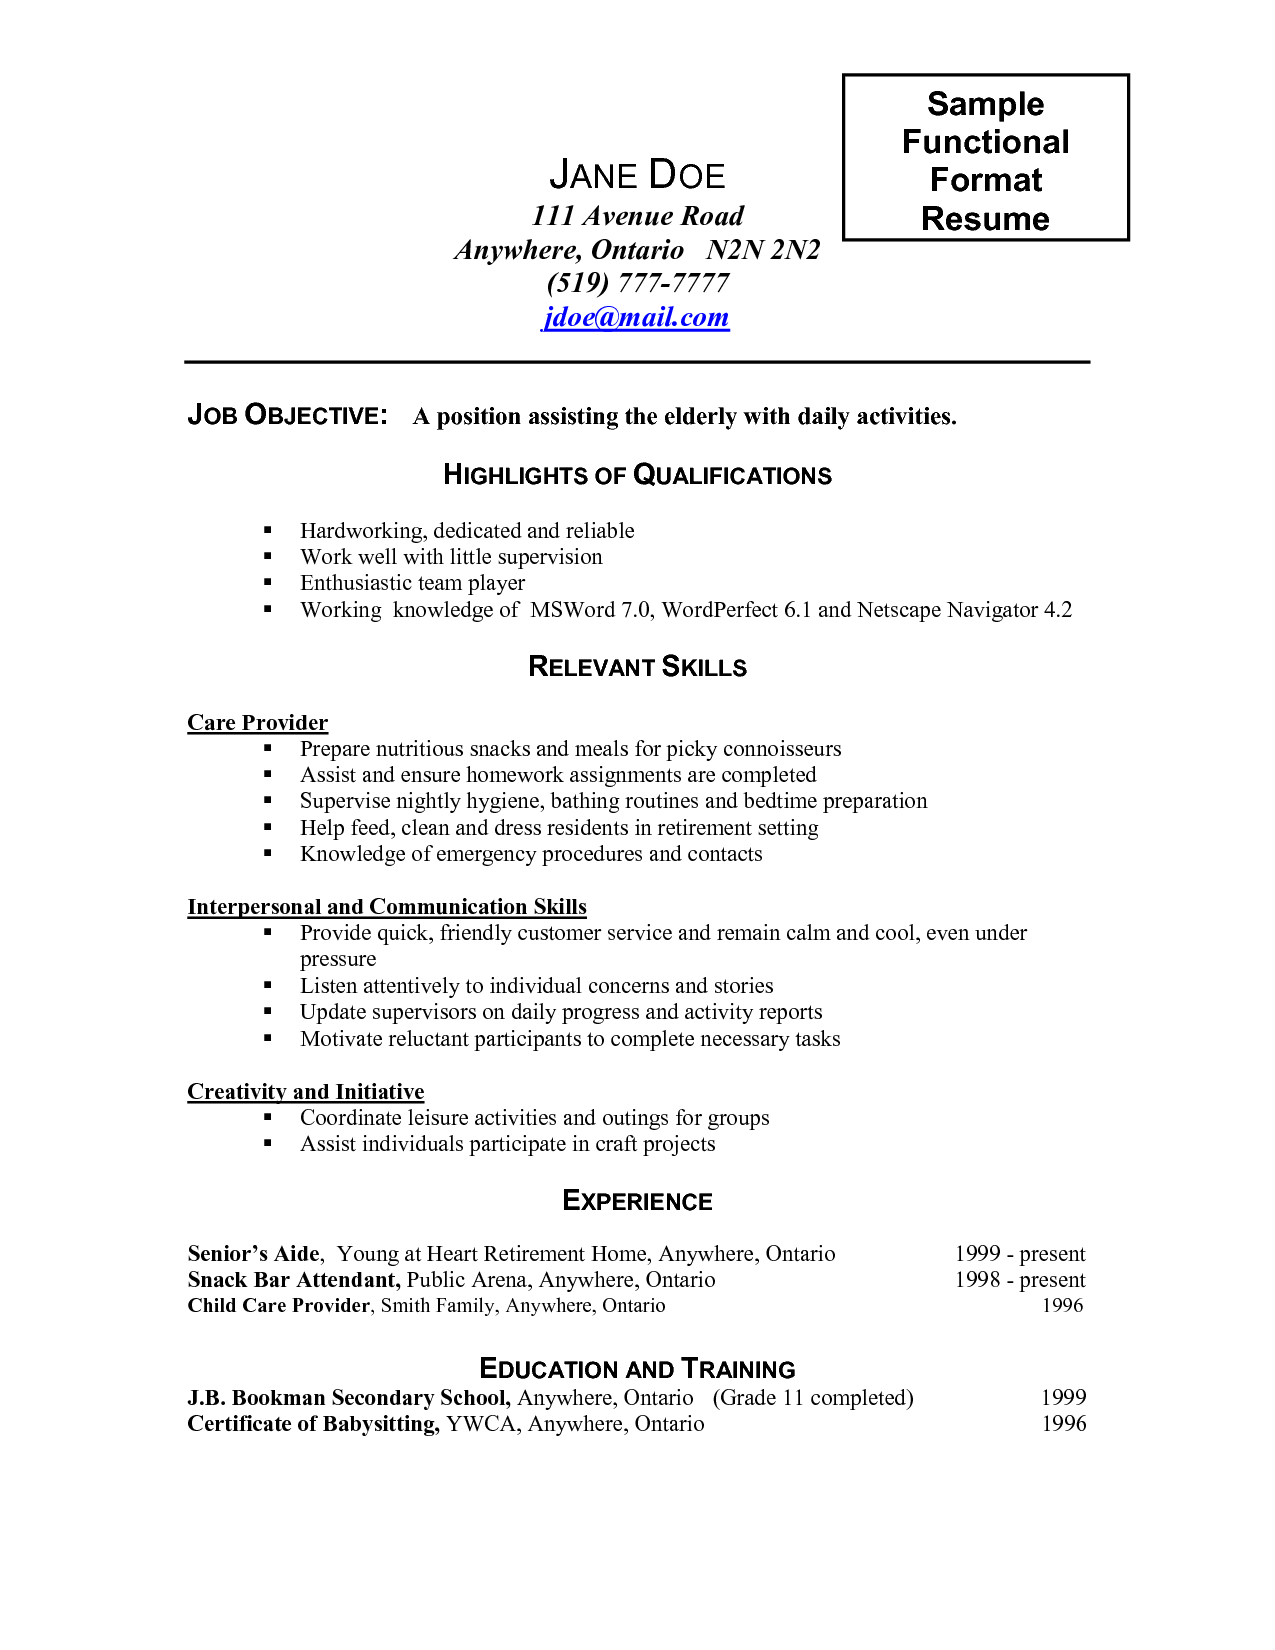 Caregiver Job Description for Resume 2016 - SampleBusinessResume.com ...